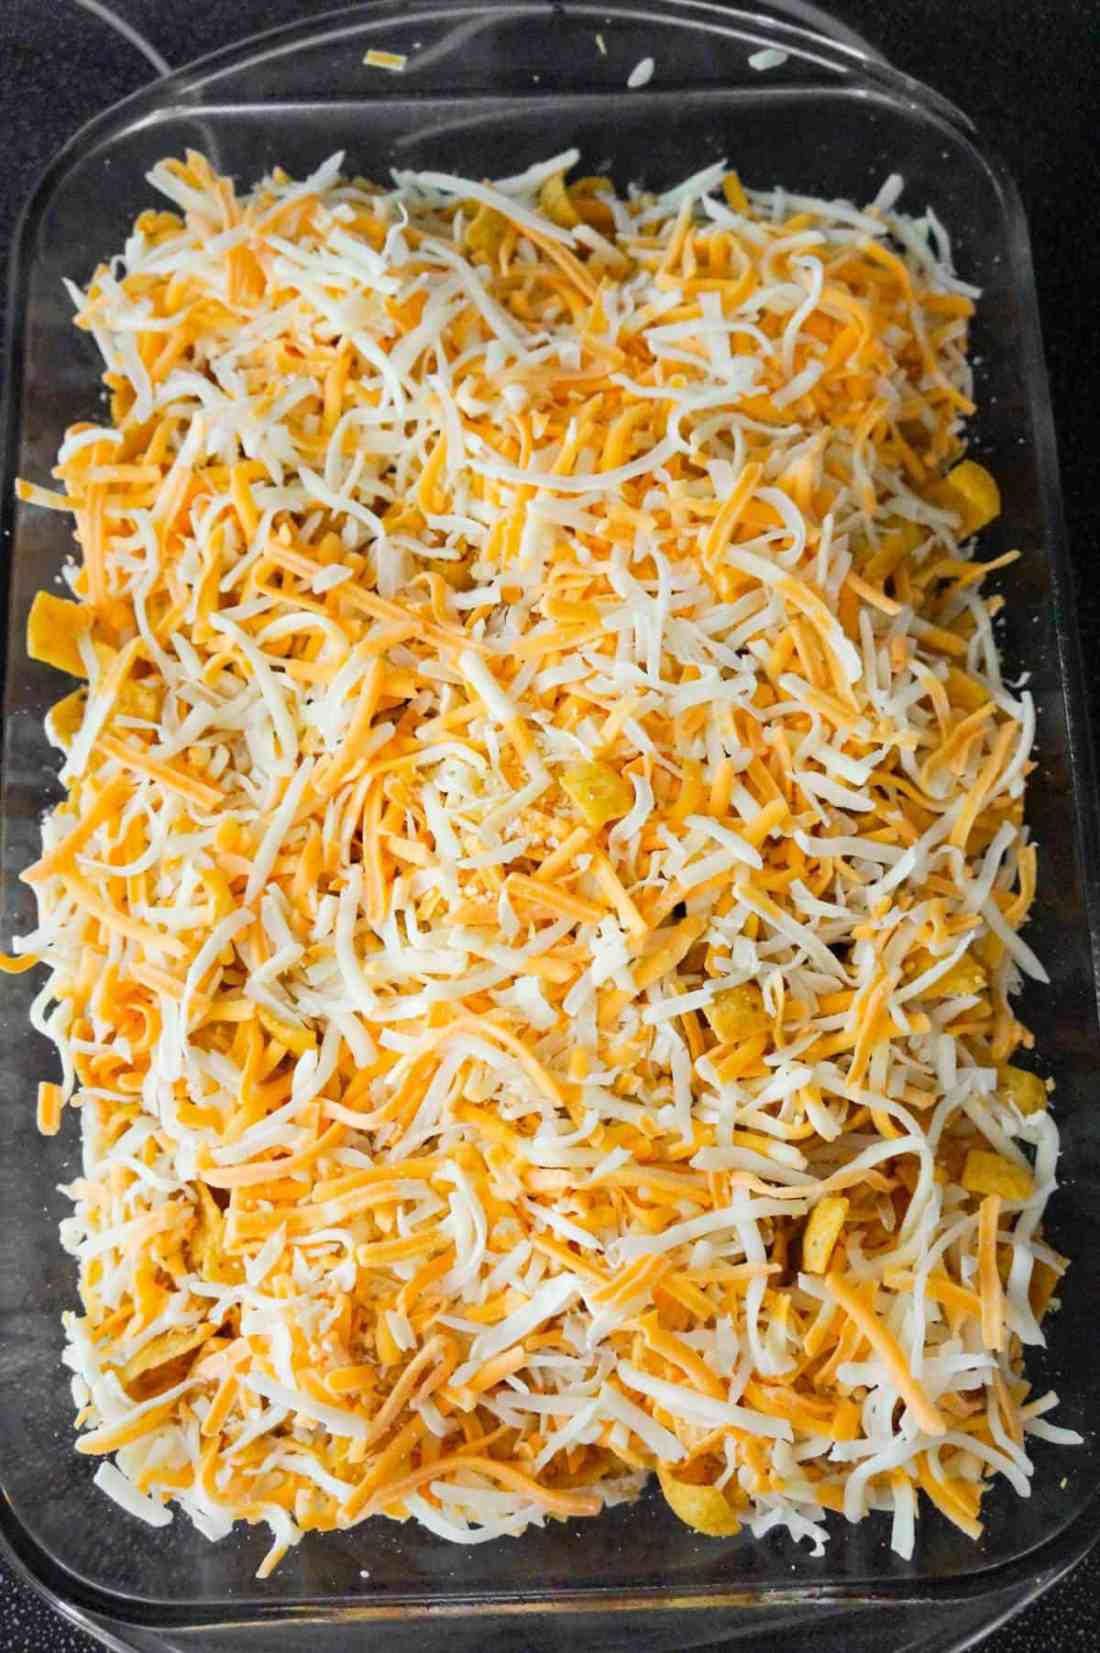 shredded mozzarella and cheddar cheese on top of buffalo chicken frito pie